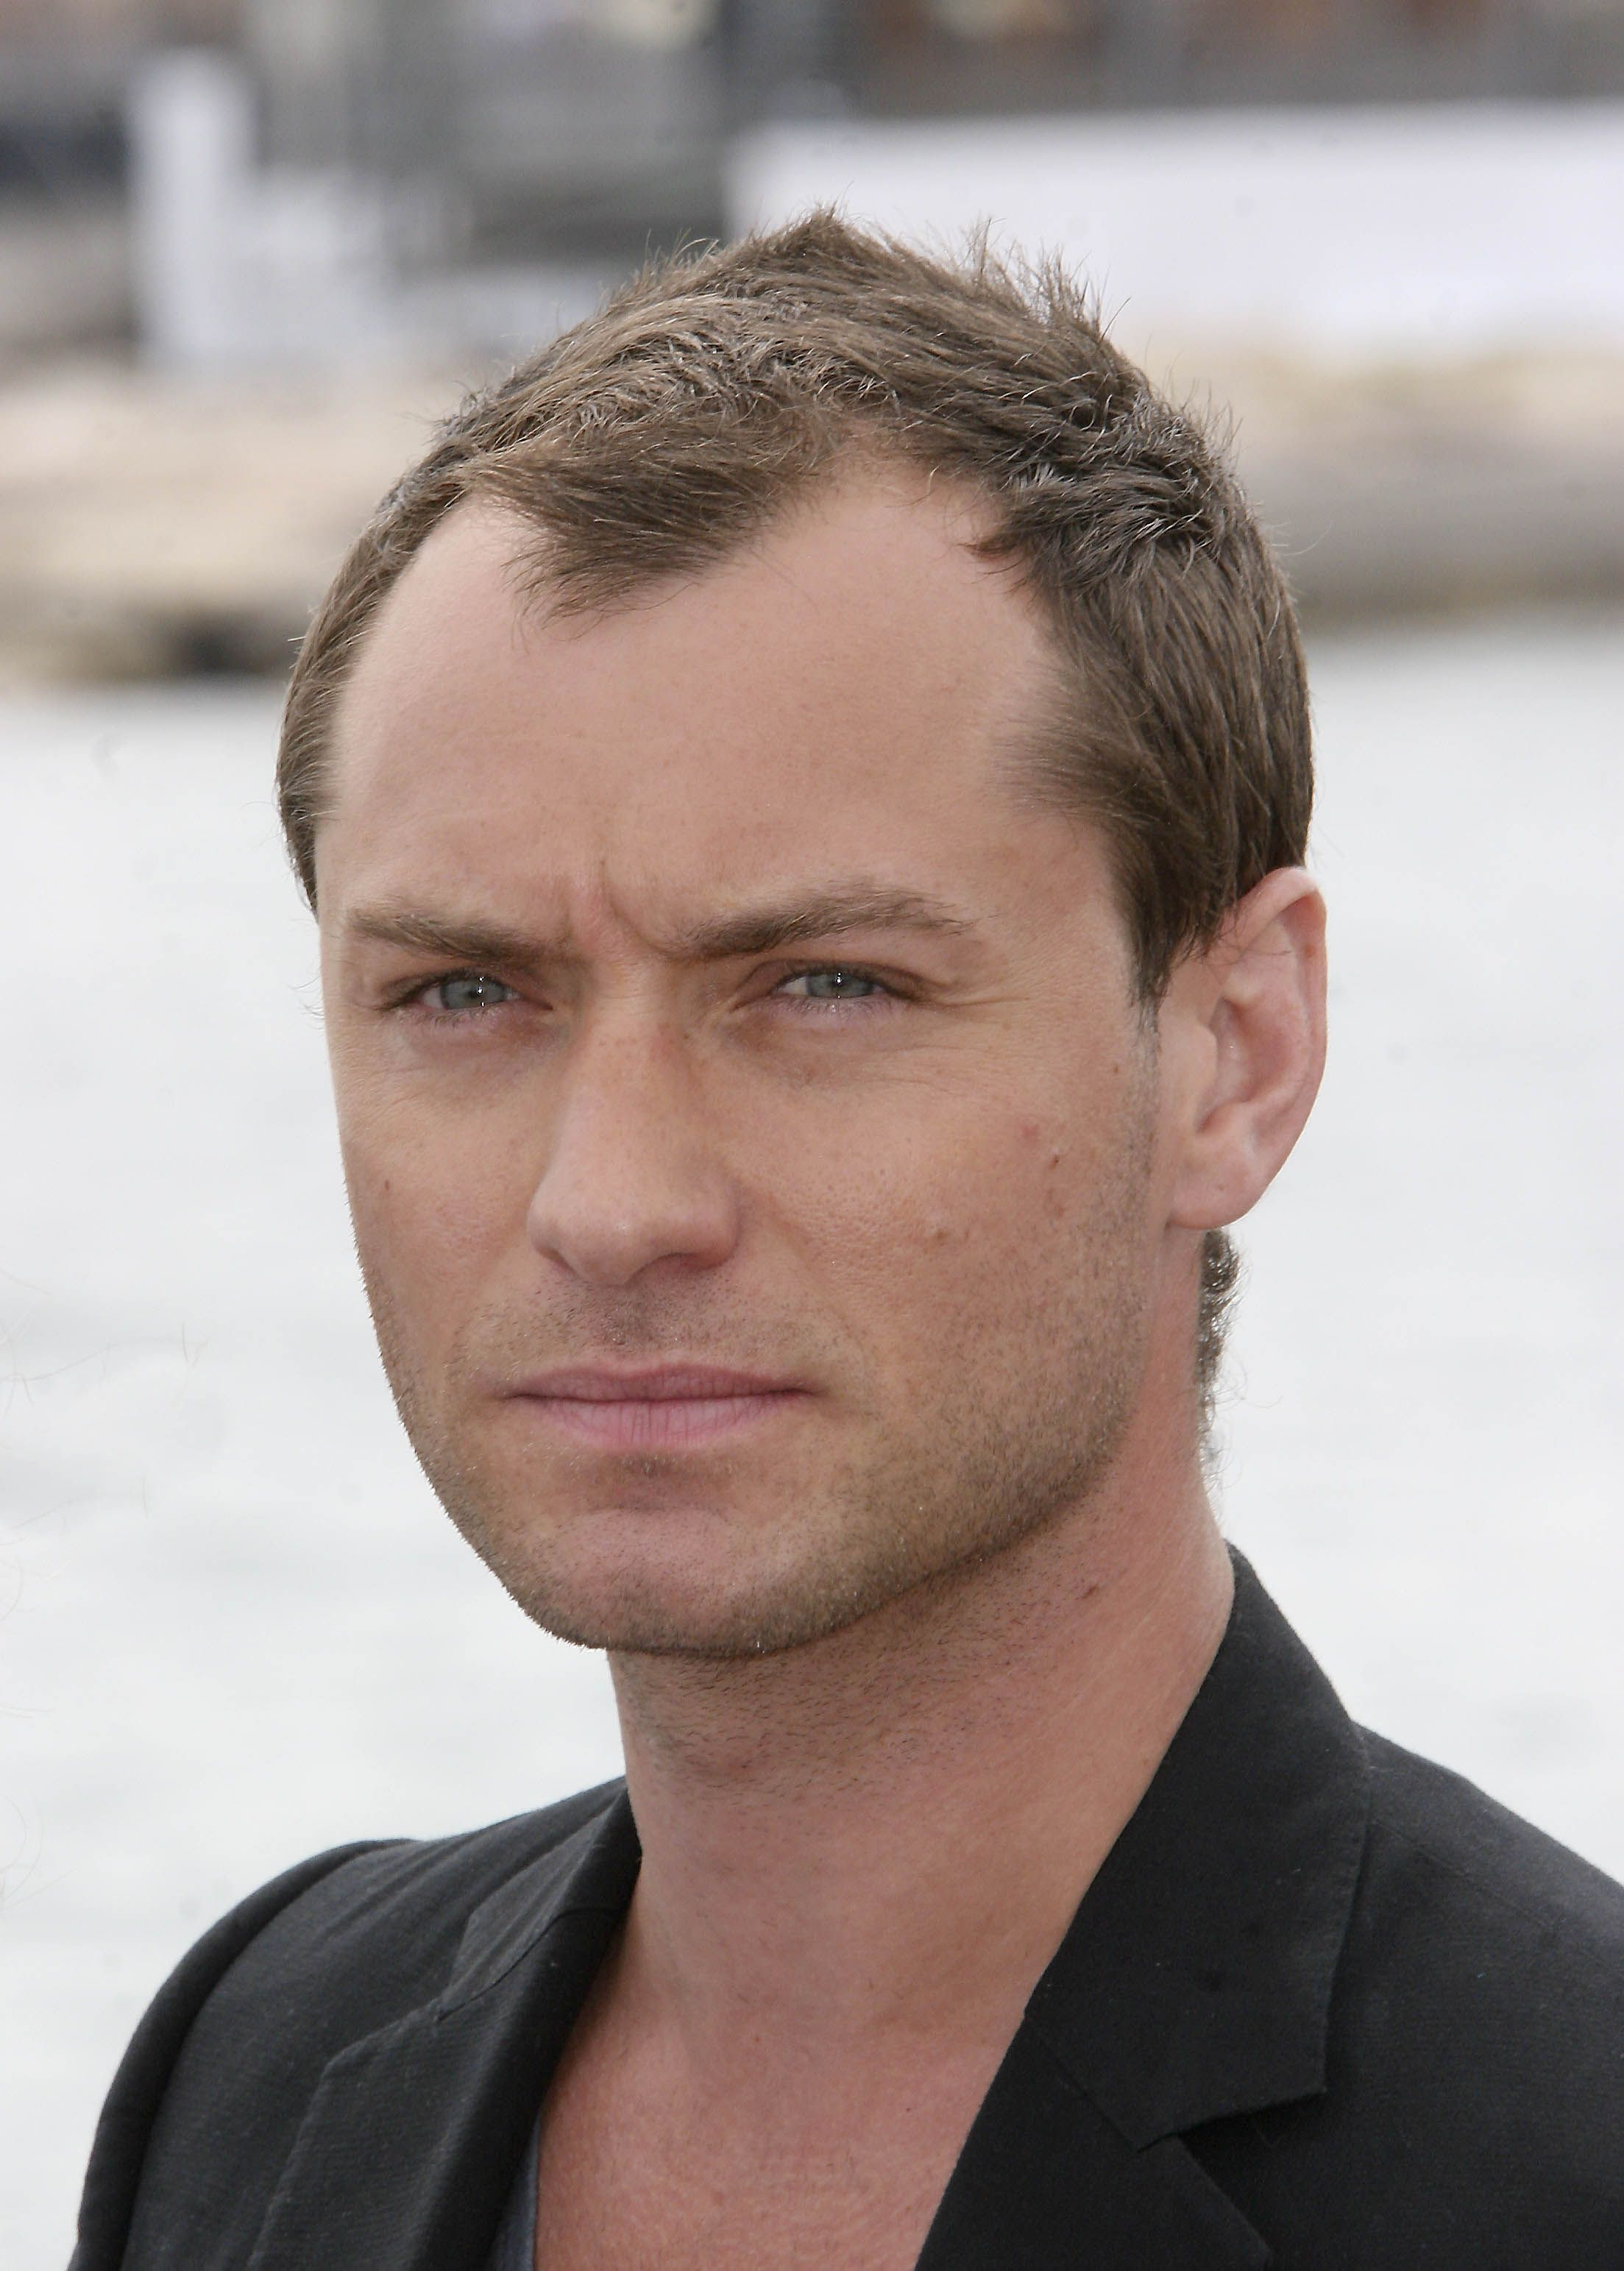 jude law vkjude law pope, jude law young, jude law 2016, jude law films, jude law movies, jude law height, jude law son, jude law 2017, jude law girlfriend, jude law gif, jude law young pope, jude law tumblr, jude law dior, jude law фильмы, jude law photoshoot, jude law daughter, jude law vk, jude law wife, jude law wikipedia, jude law watson